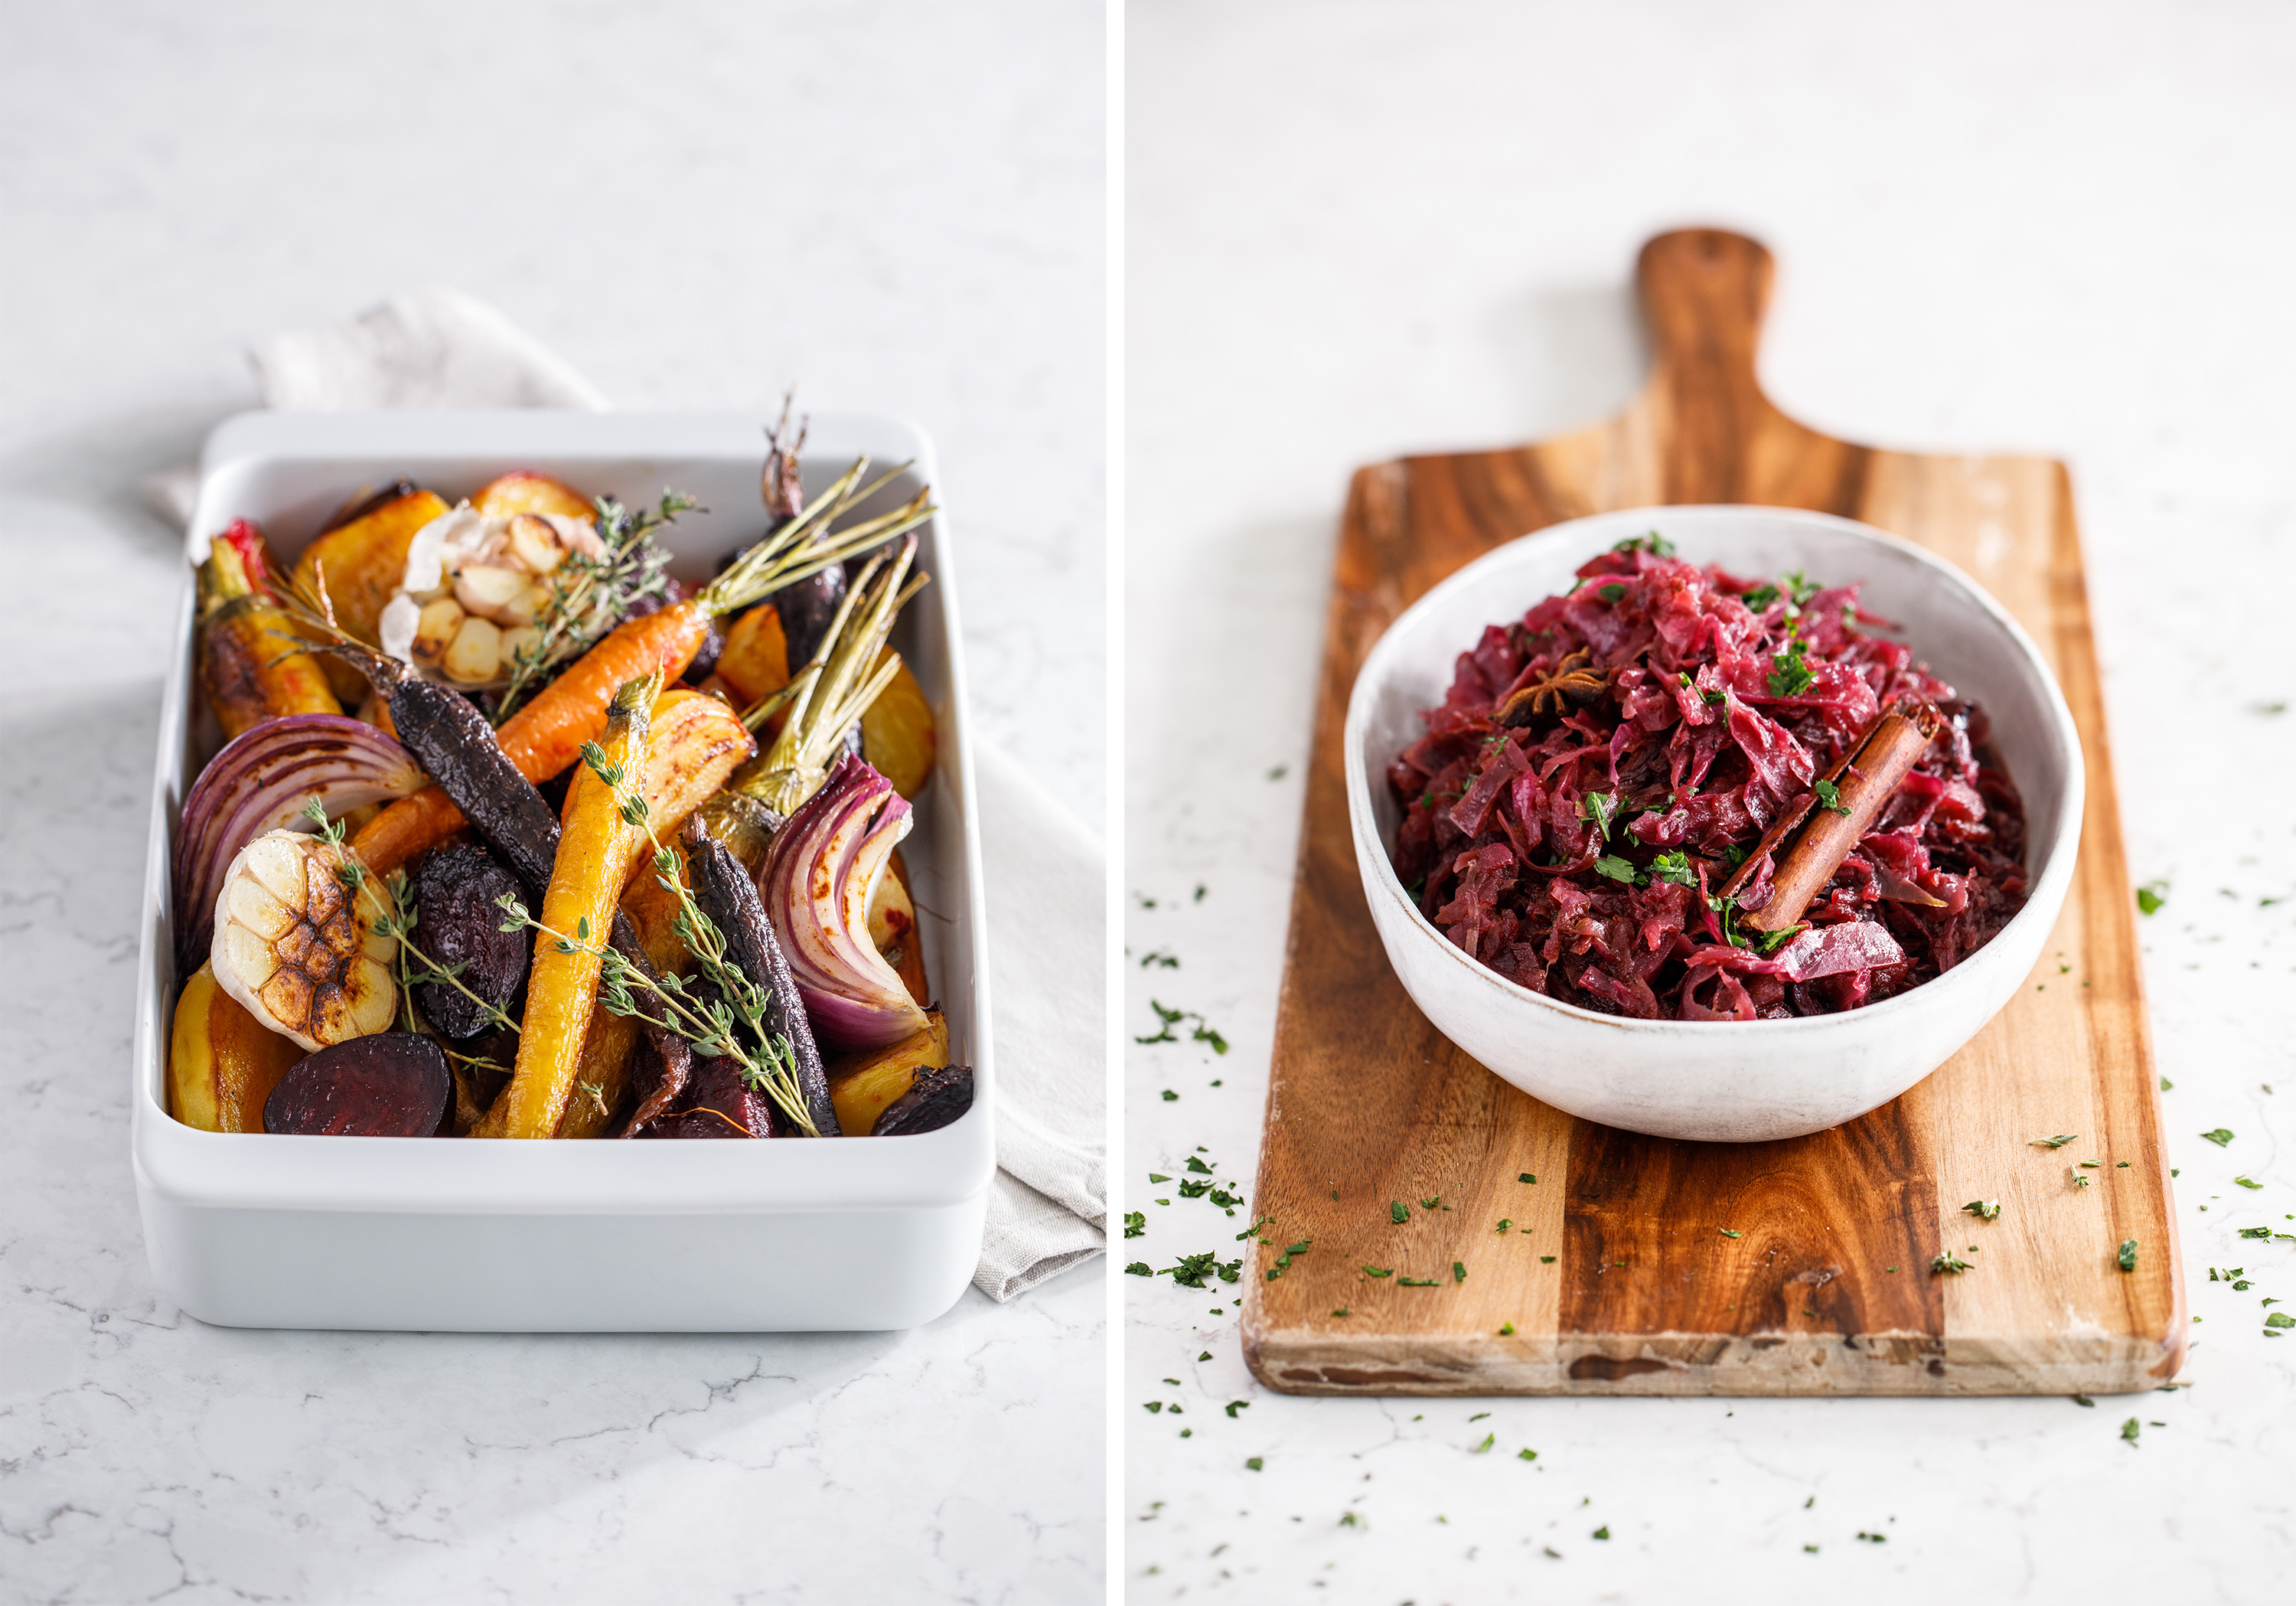 Roasted winter veg and red cabbage recipe photography